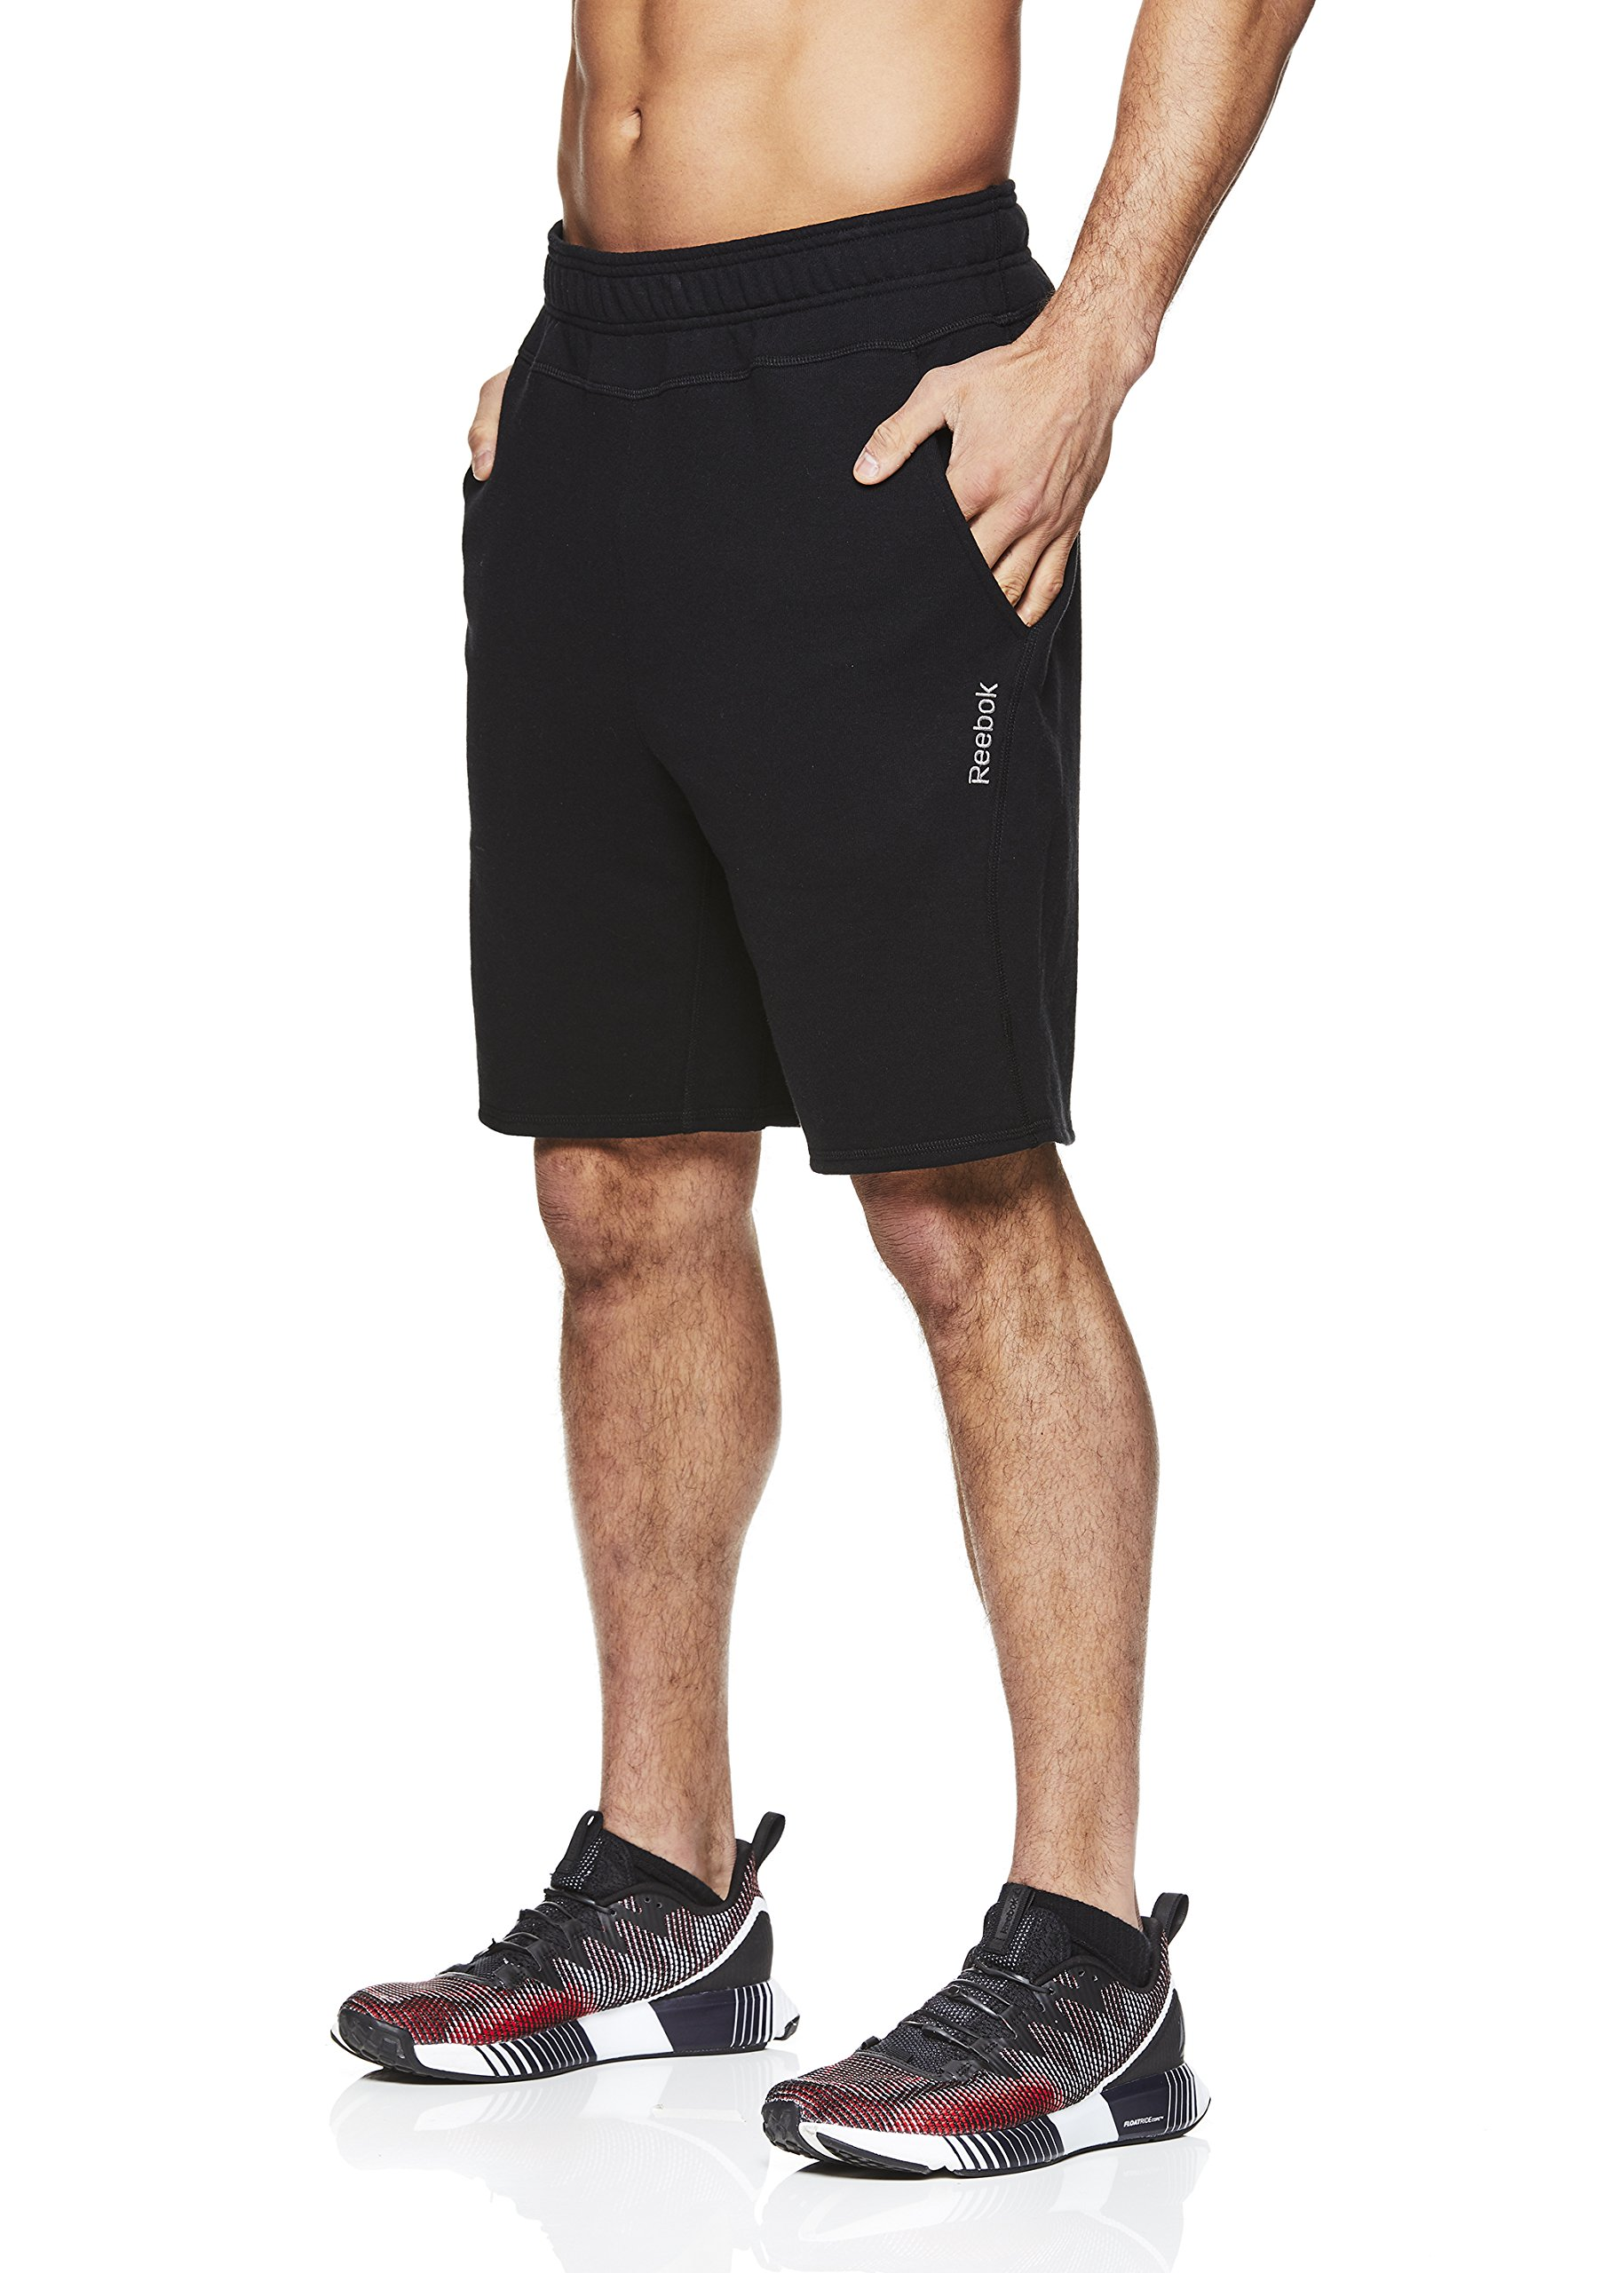 Reebok Wallace Shorts, Black, Extra Large